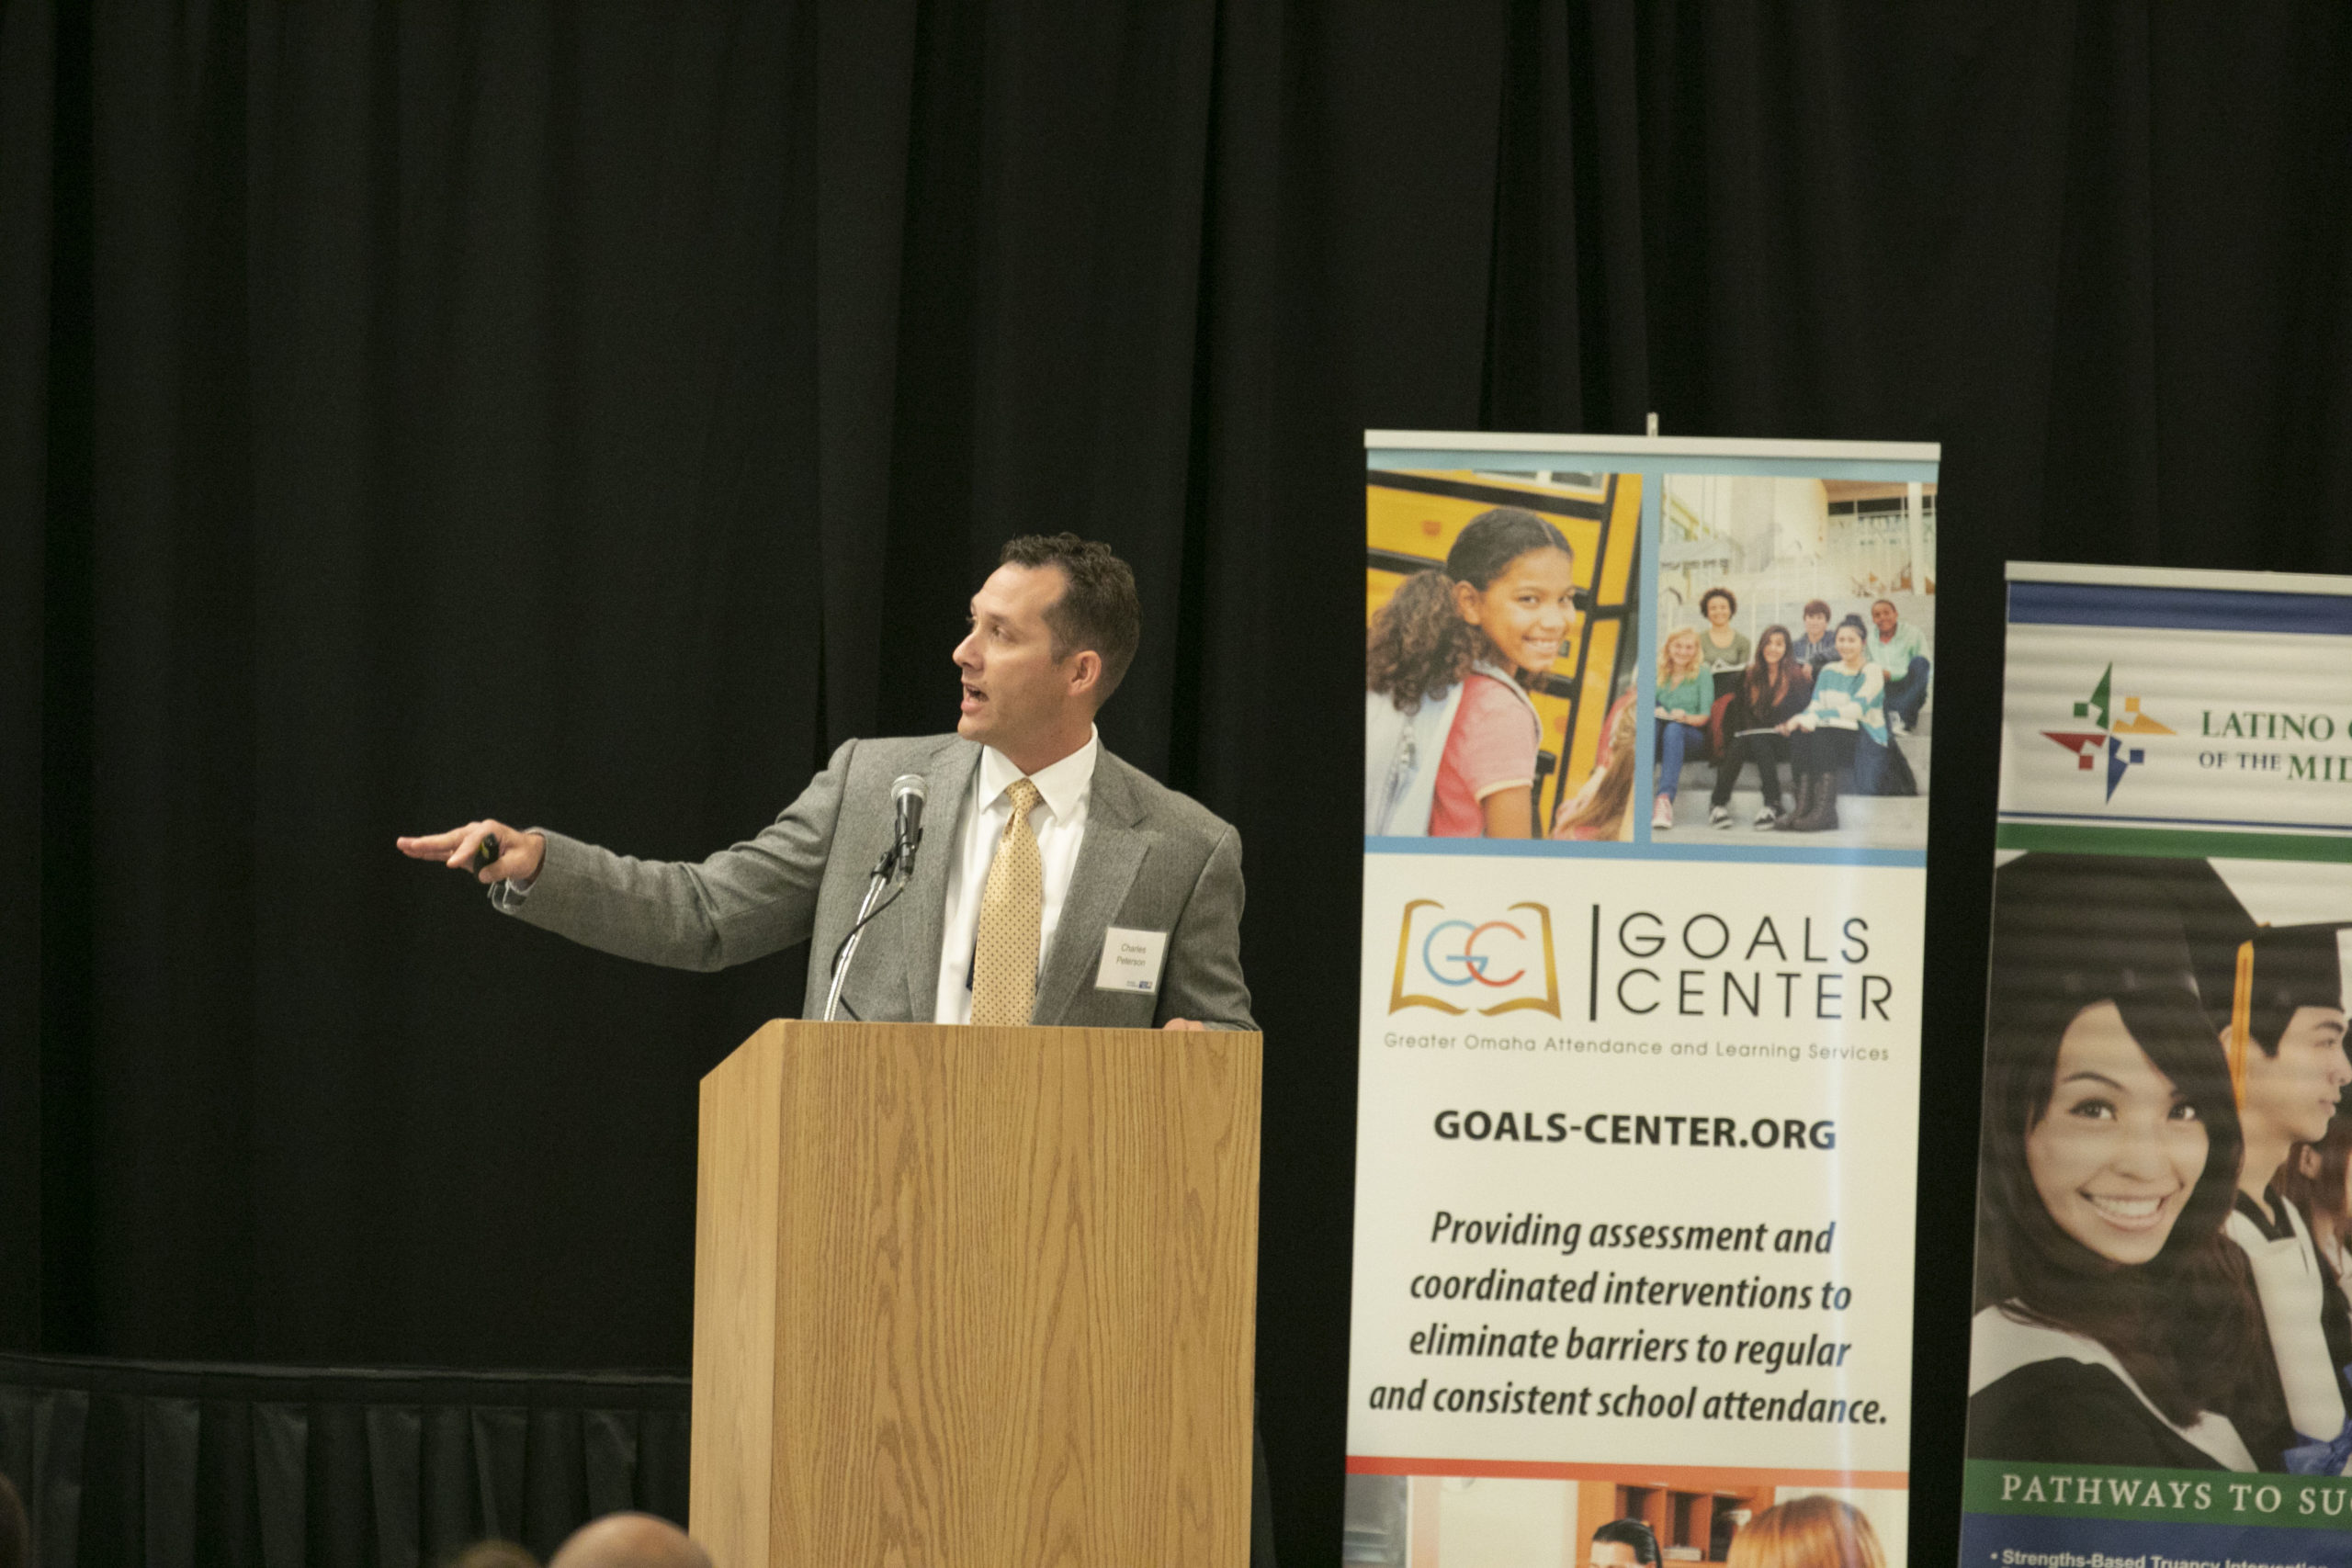 Charles Peterson, United Way of the Midlands